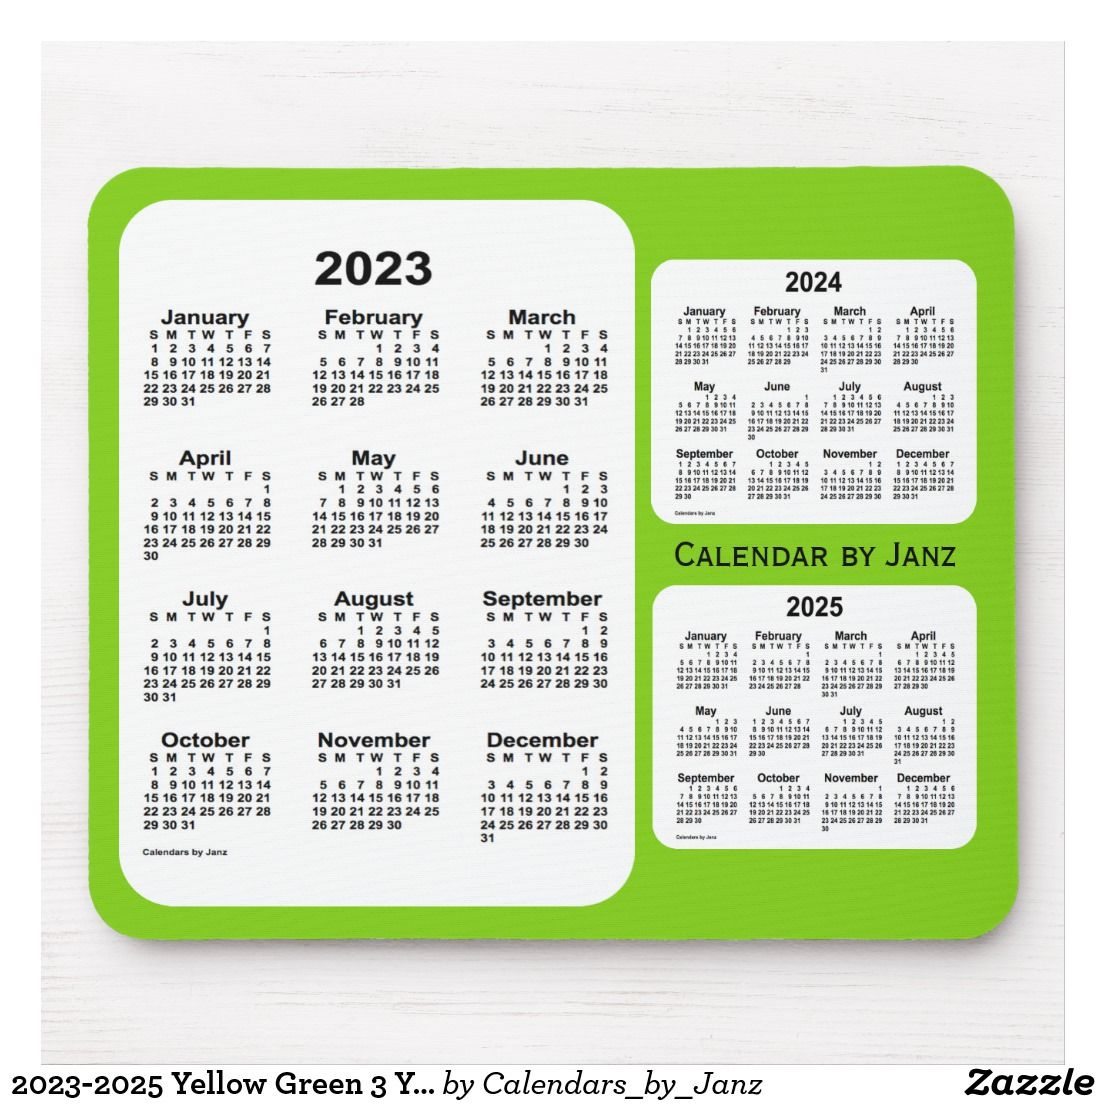 2023 2025 Yellow Green 3 Year Calendar By Janz Mouse Pad Zazzle